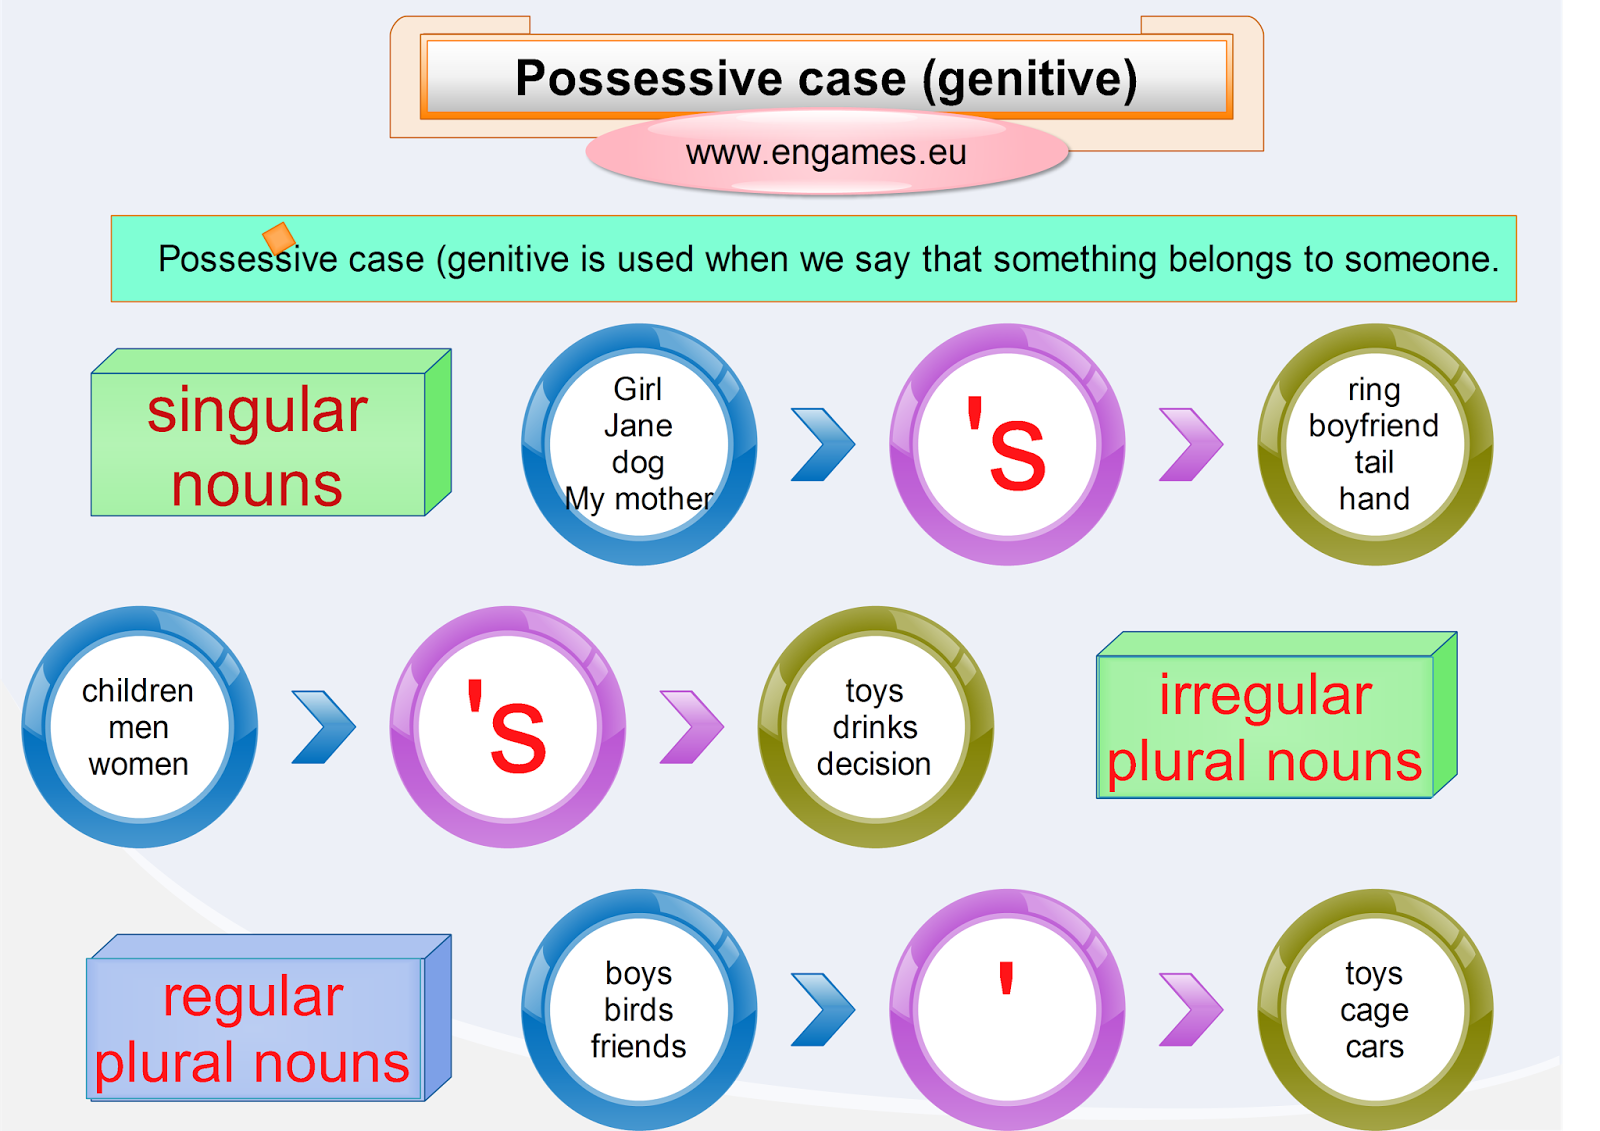 http://www.engames.eu/possessive-case-explanation/